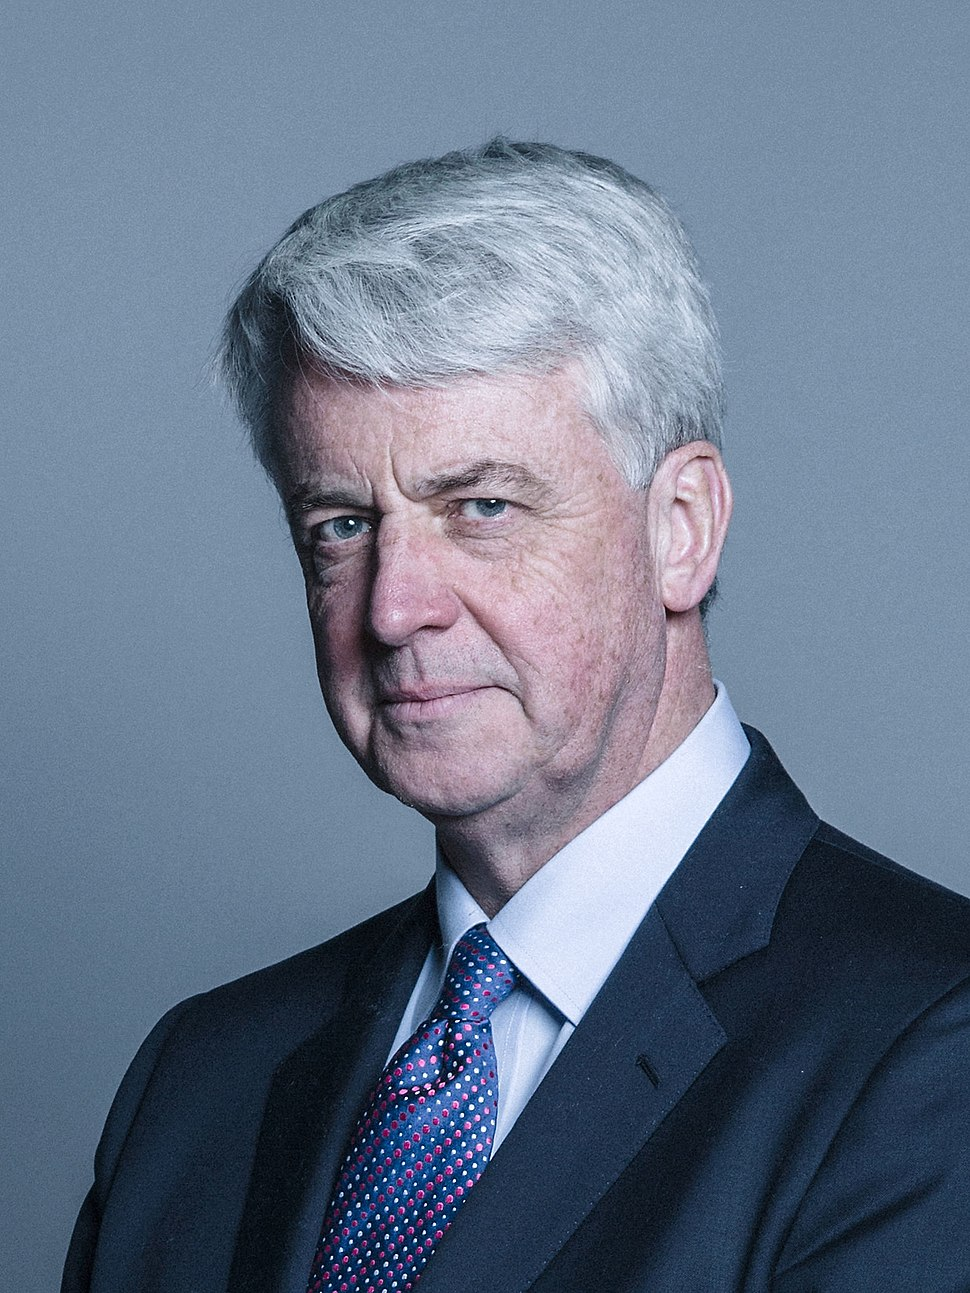 Official portrait of Lord Lansley crop 2